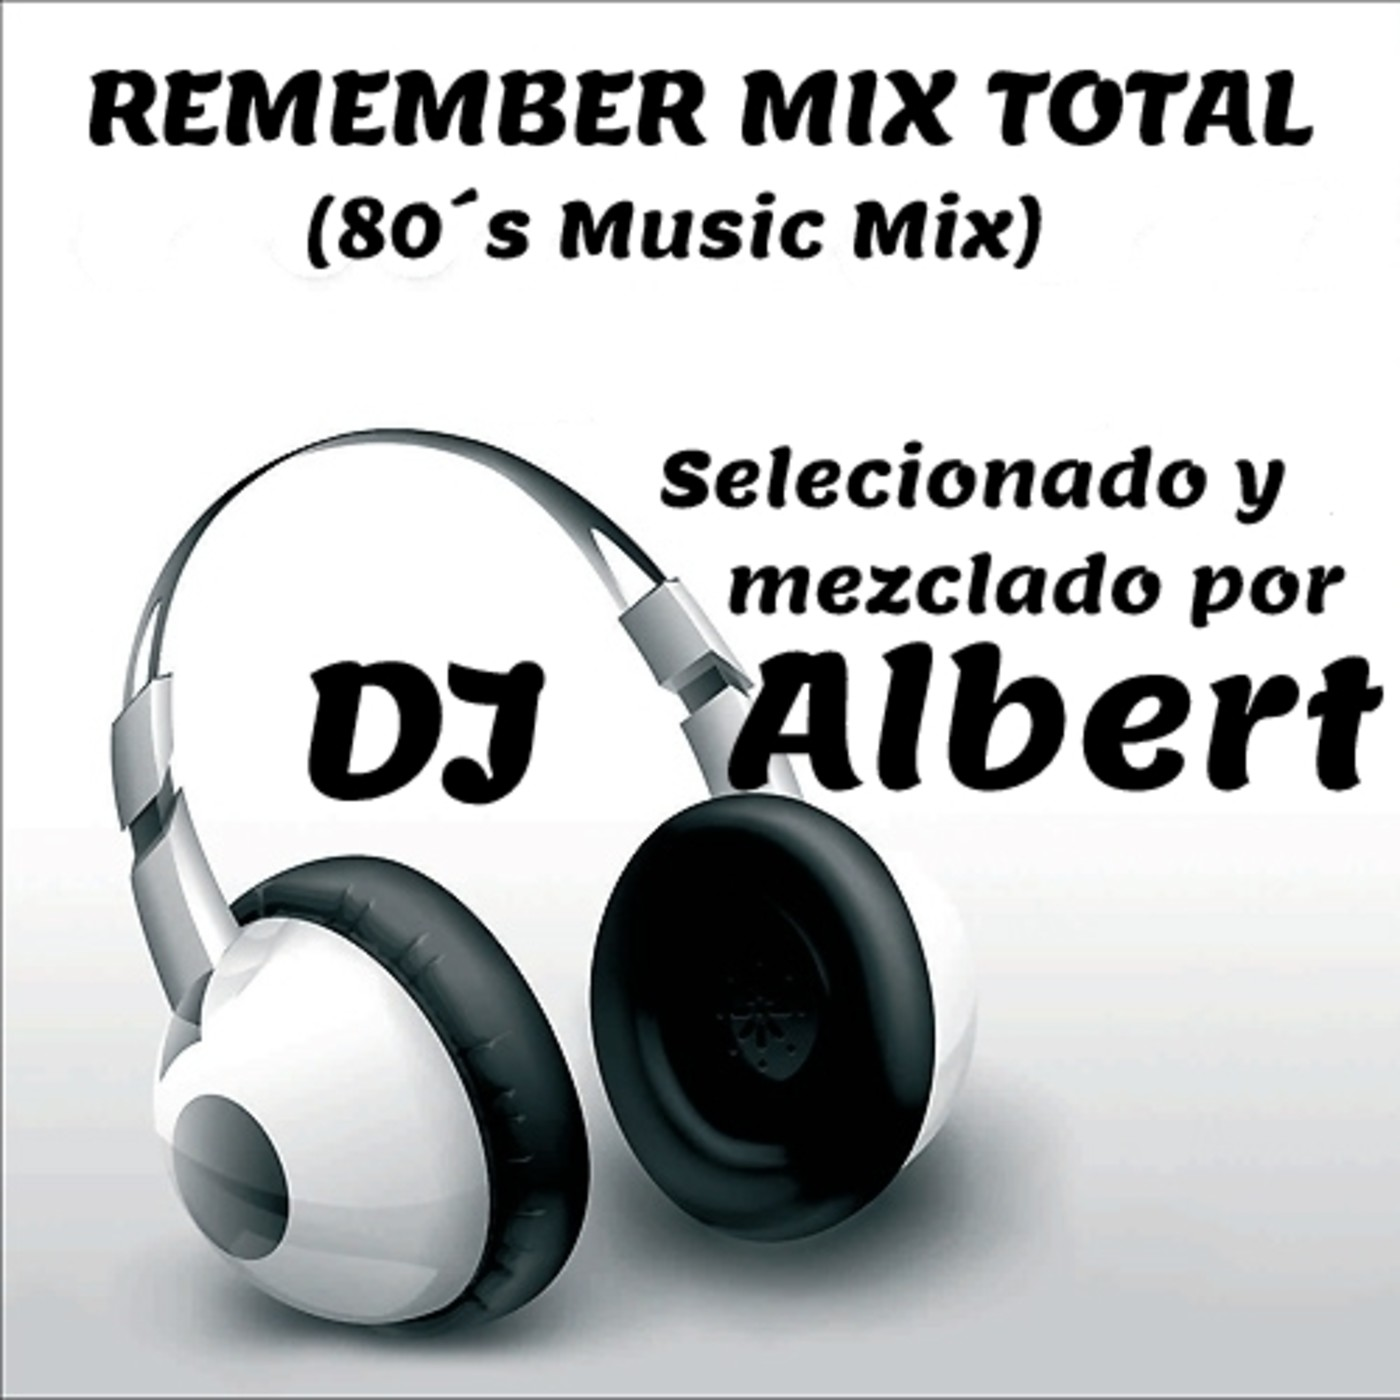 REMEMBER MIX TOTAL (80´s Music Mix) Seleccionado y mezclado por DJ Albert